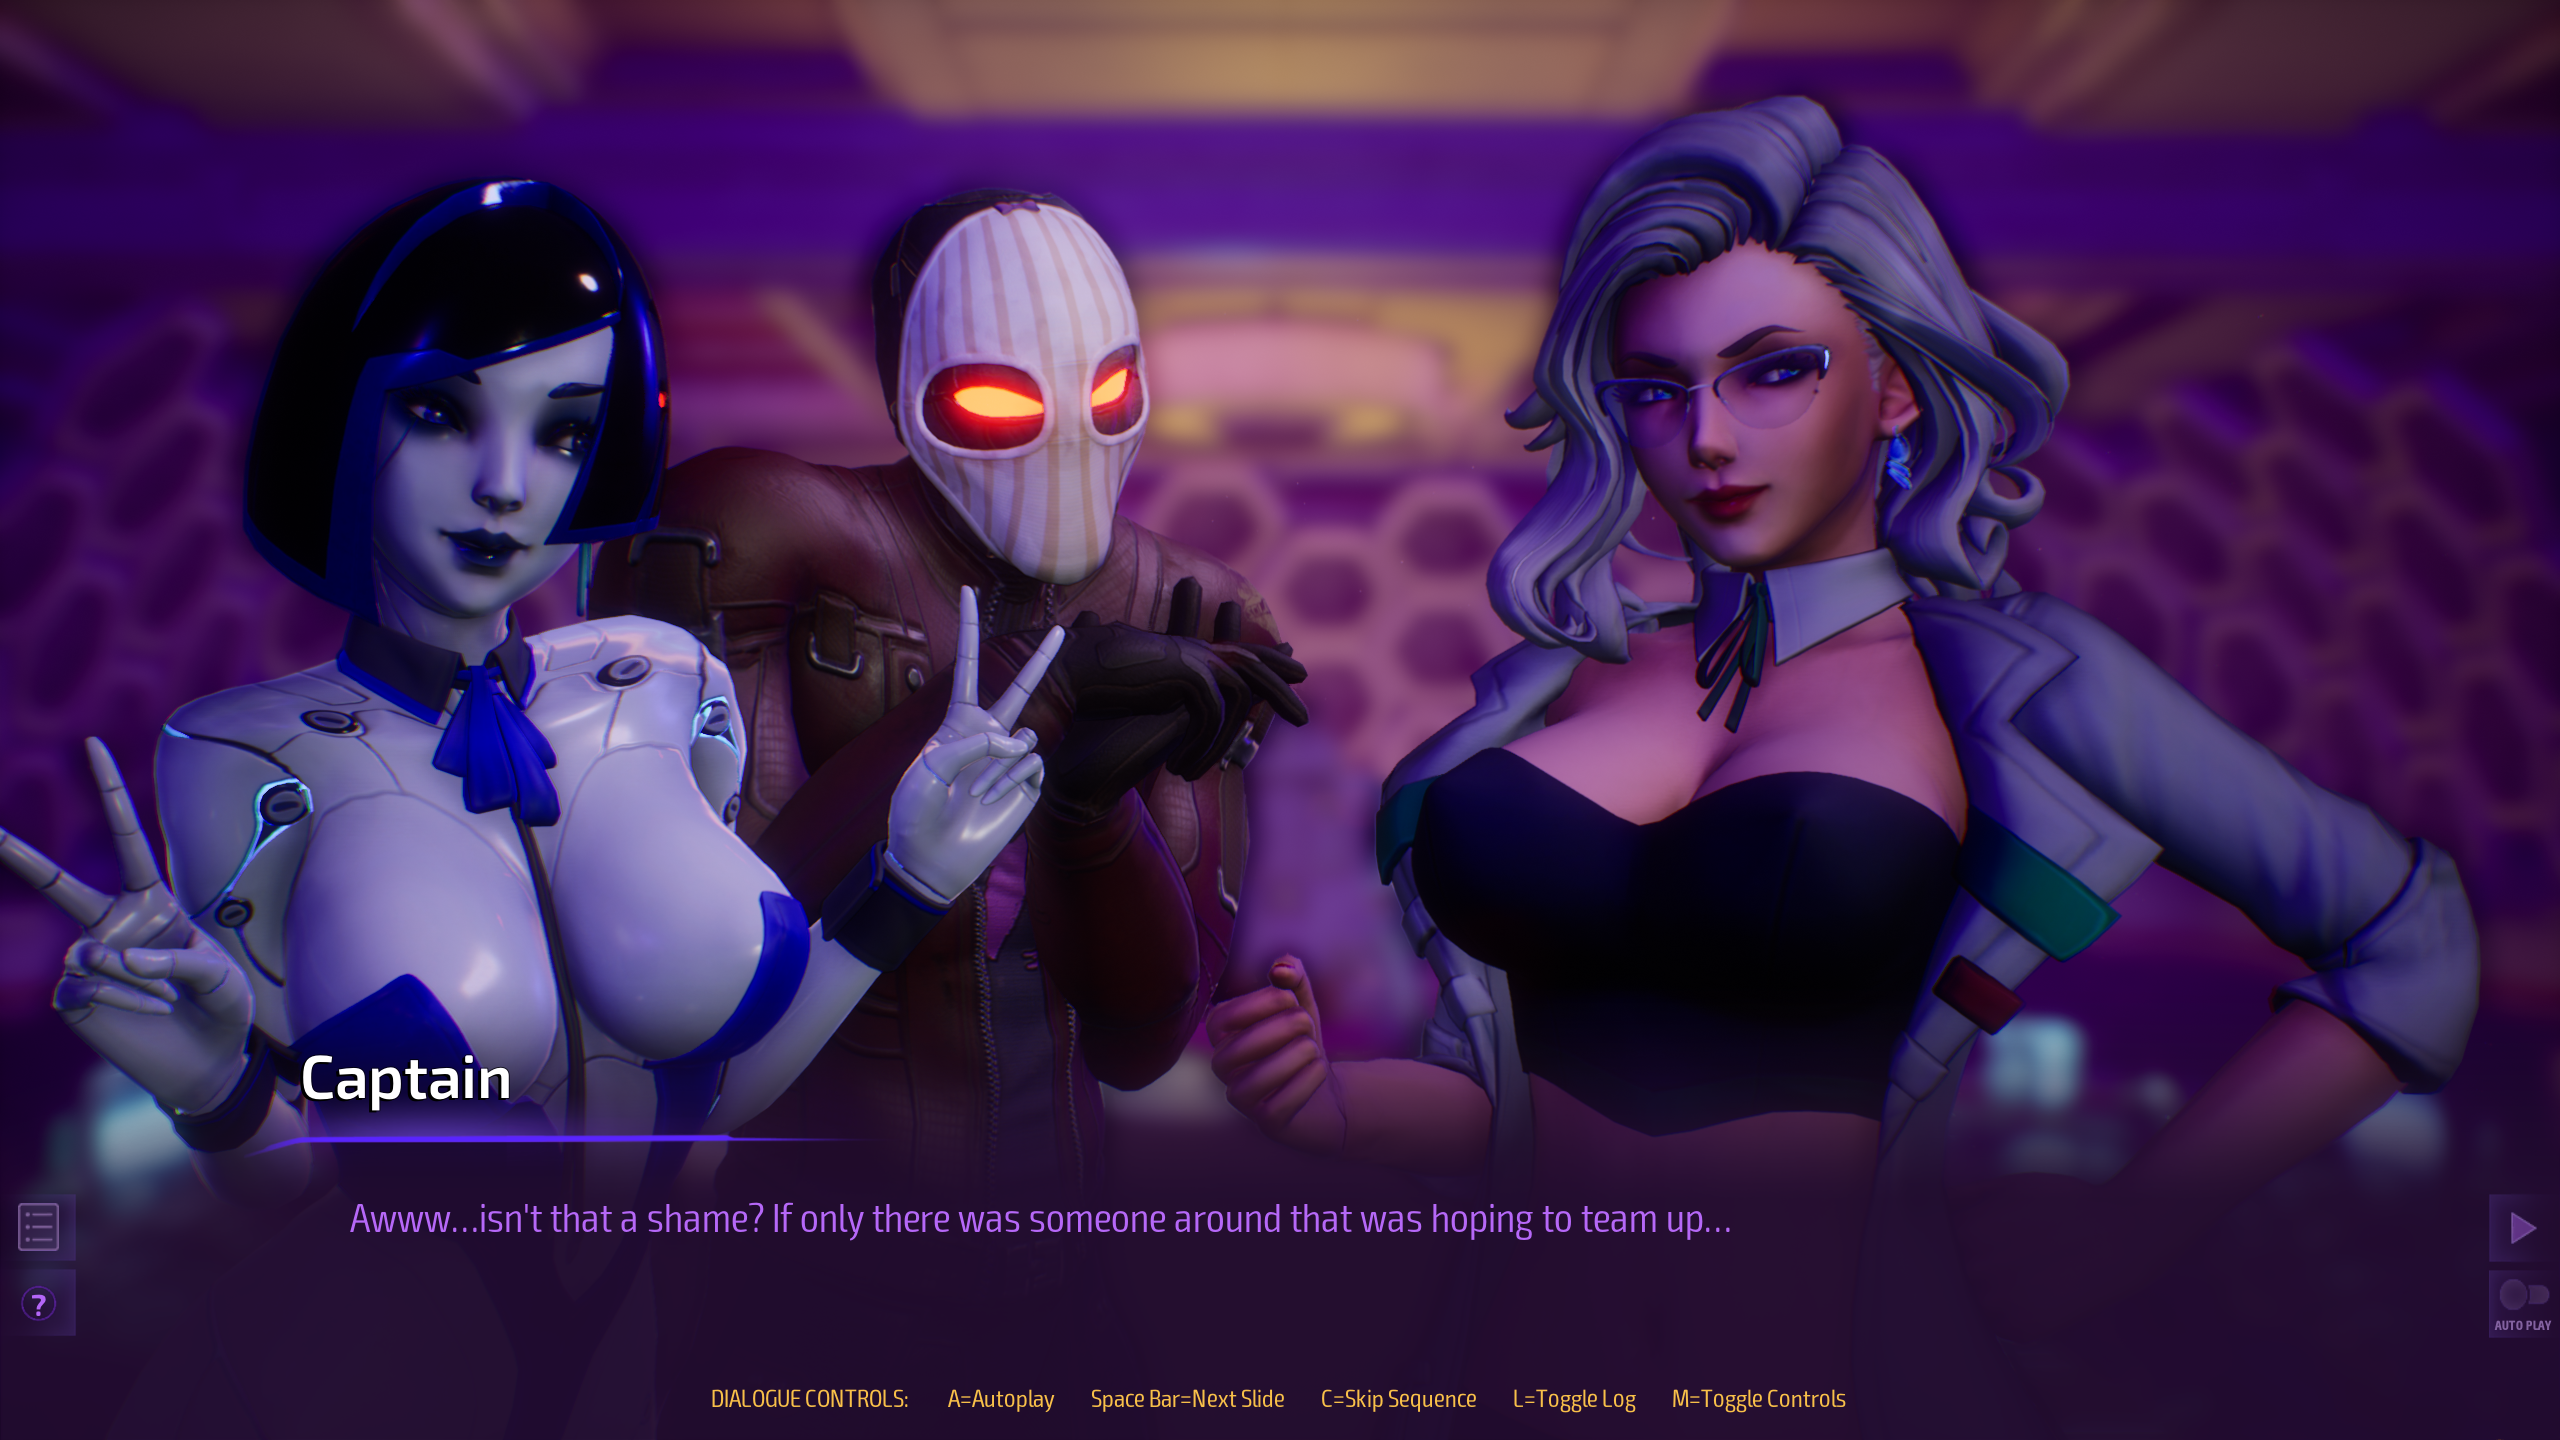 Sci-fi porn game Subverse is among Steam's bestsellers, here's what it's like